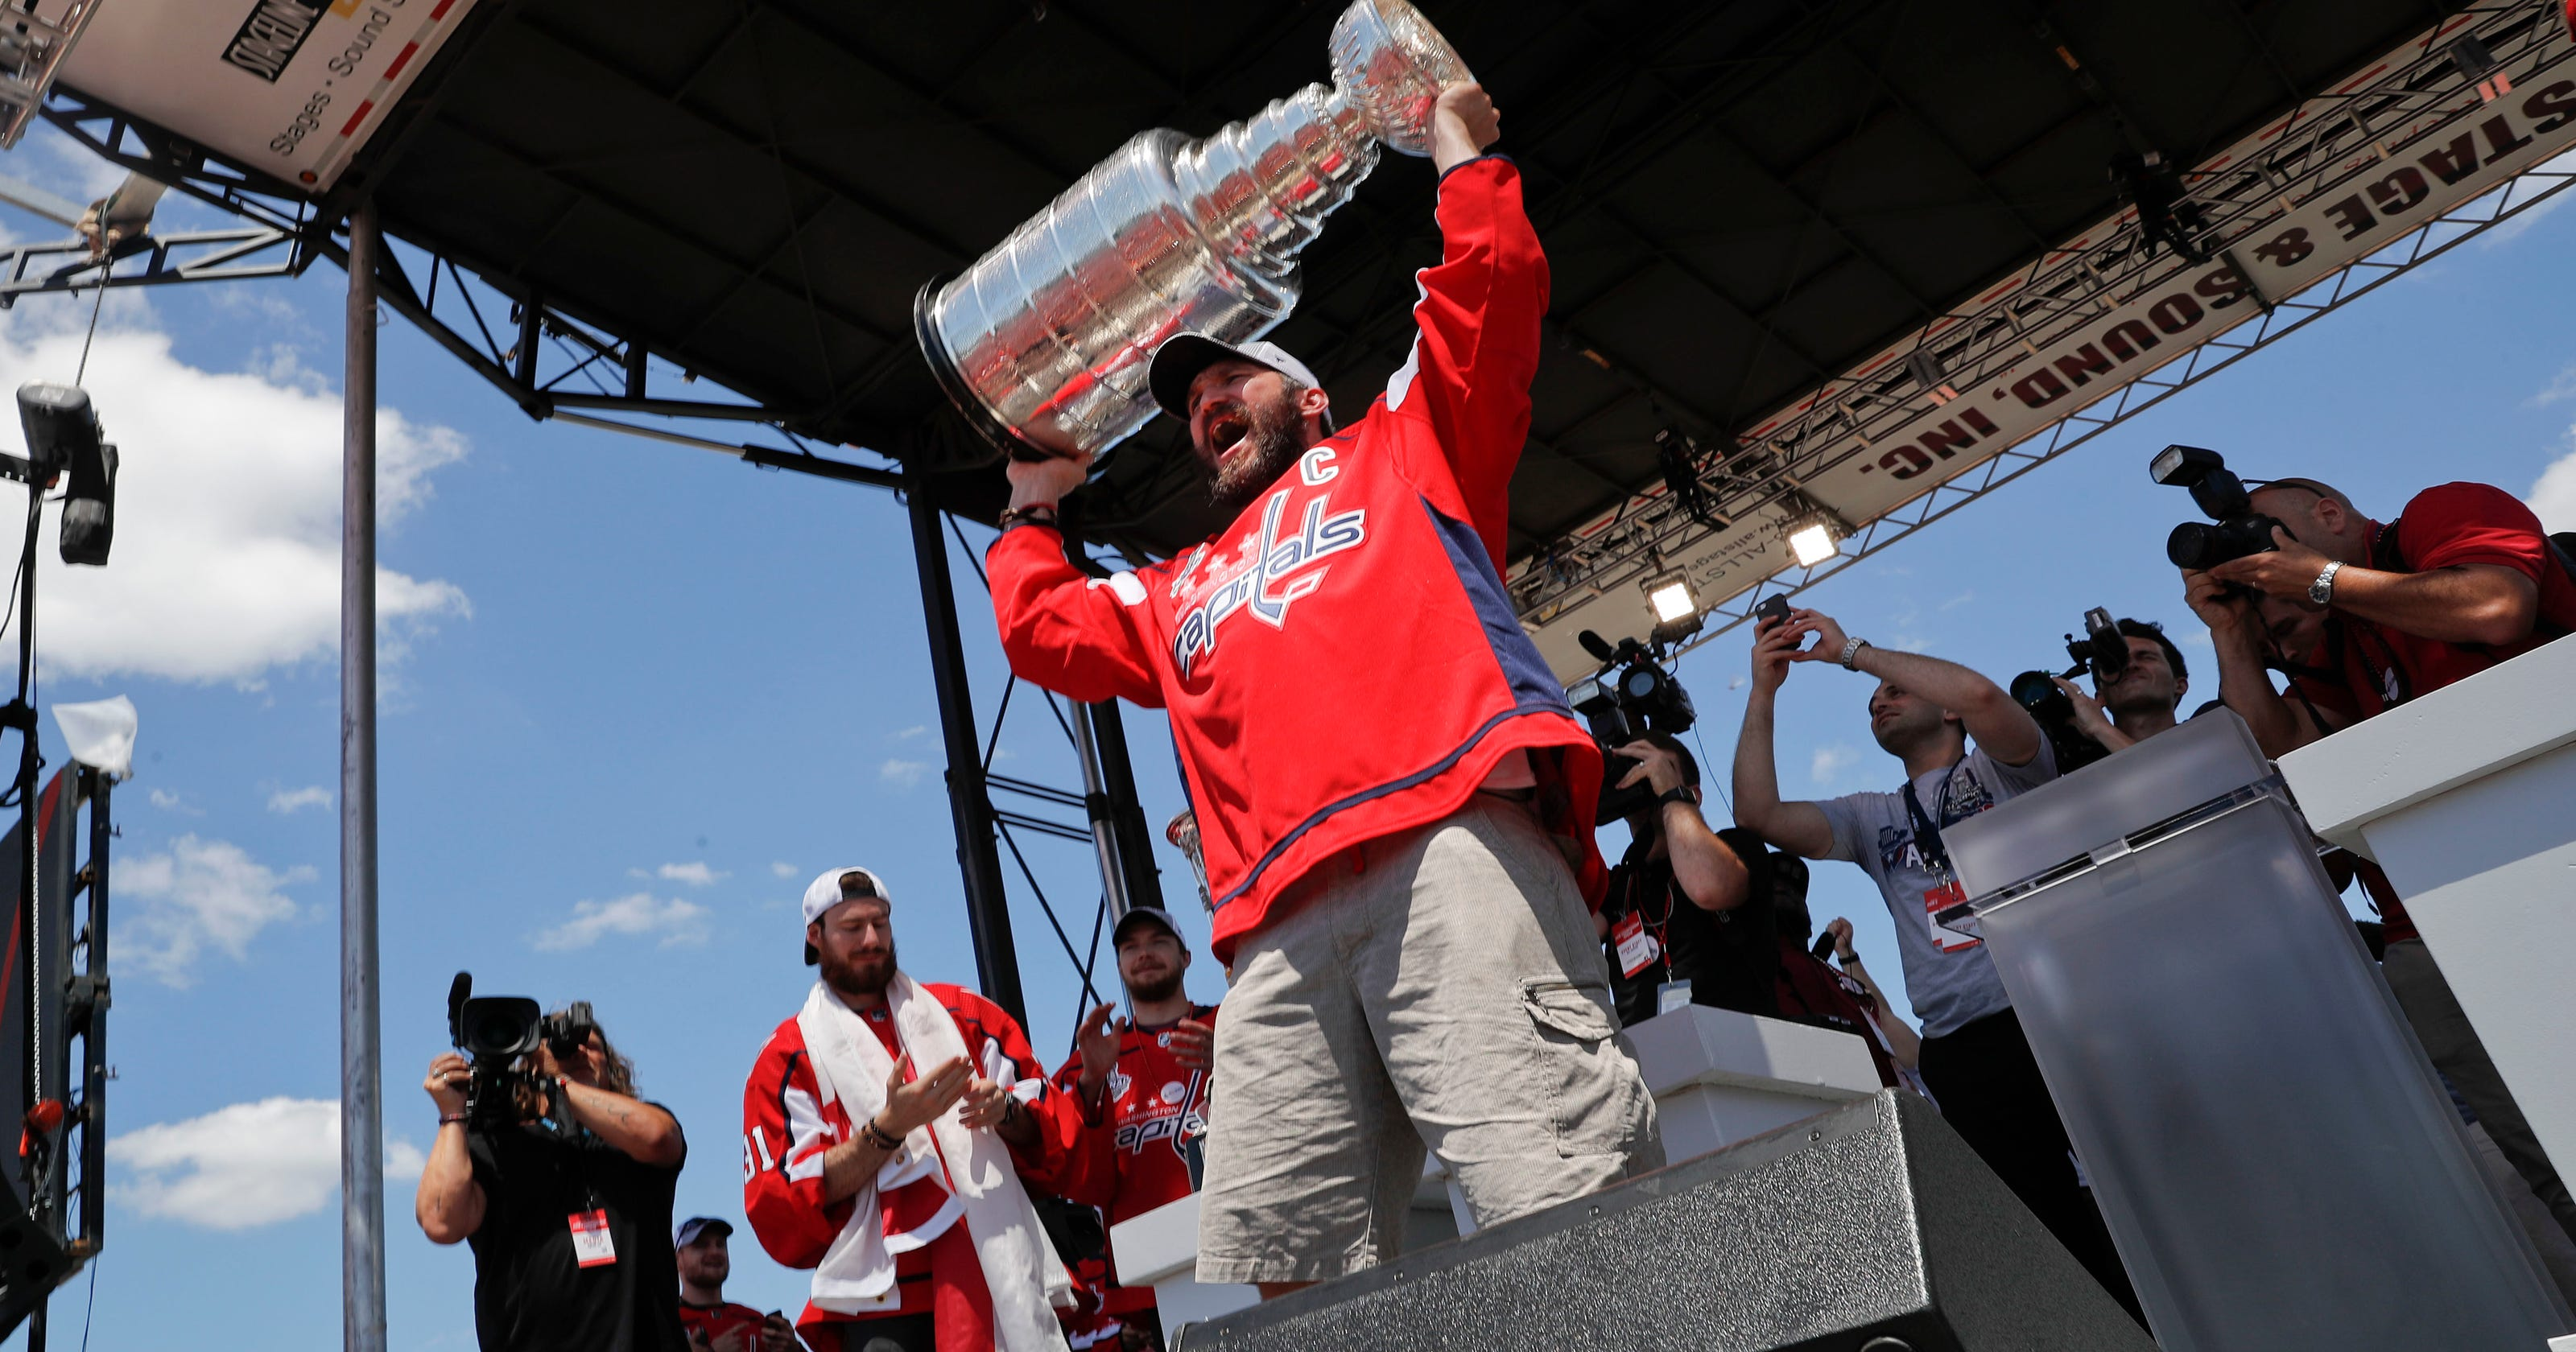 eec6e9076fb Capitals to raise Stanley Cup banner Oct. 3 against Bruins